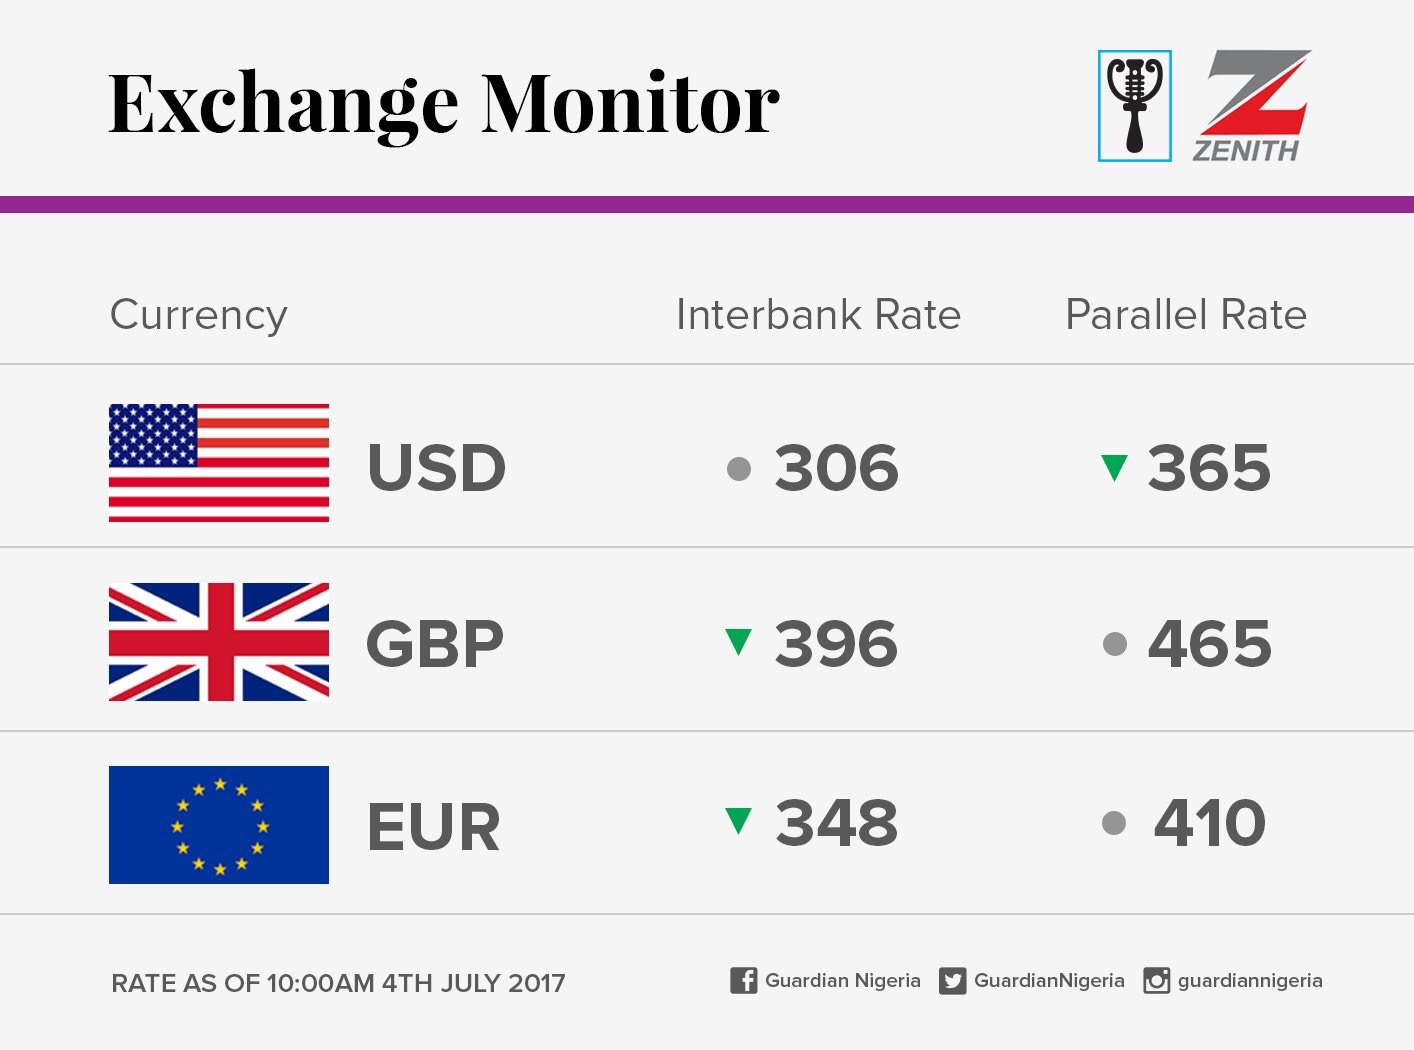 Exchange Rate For 4th July 2017